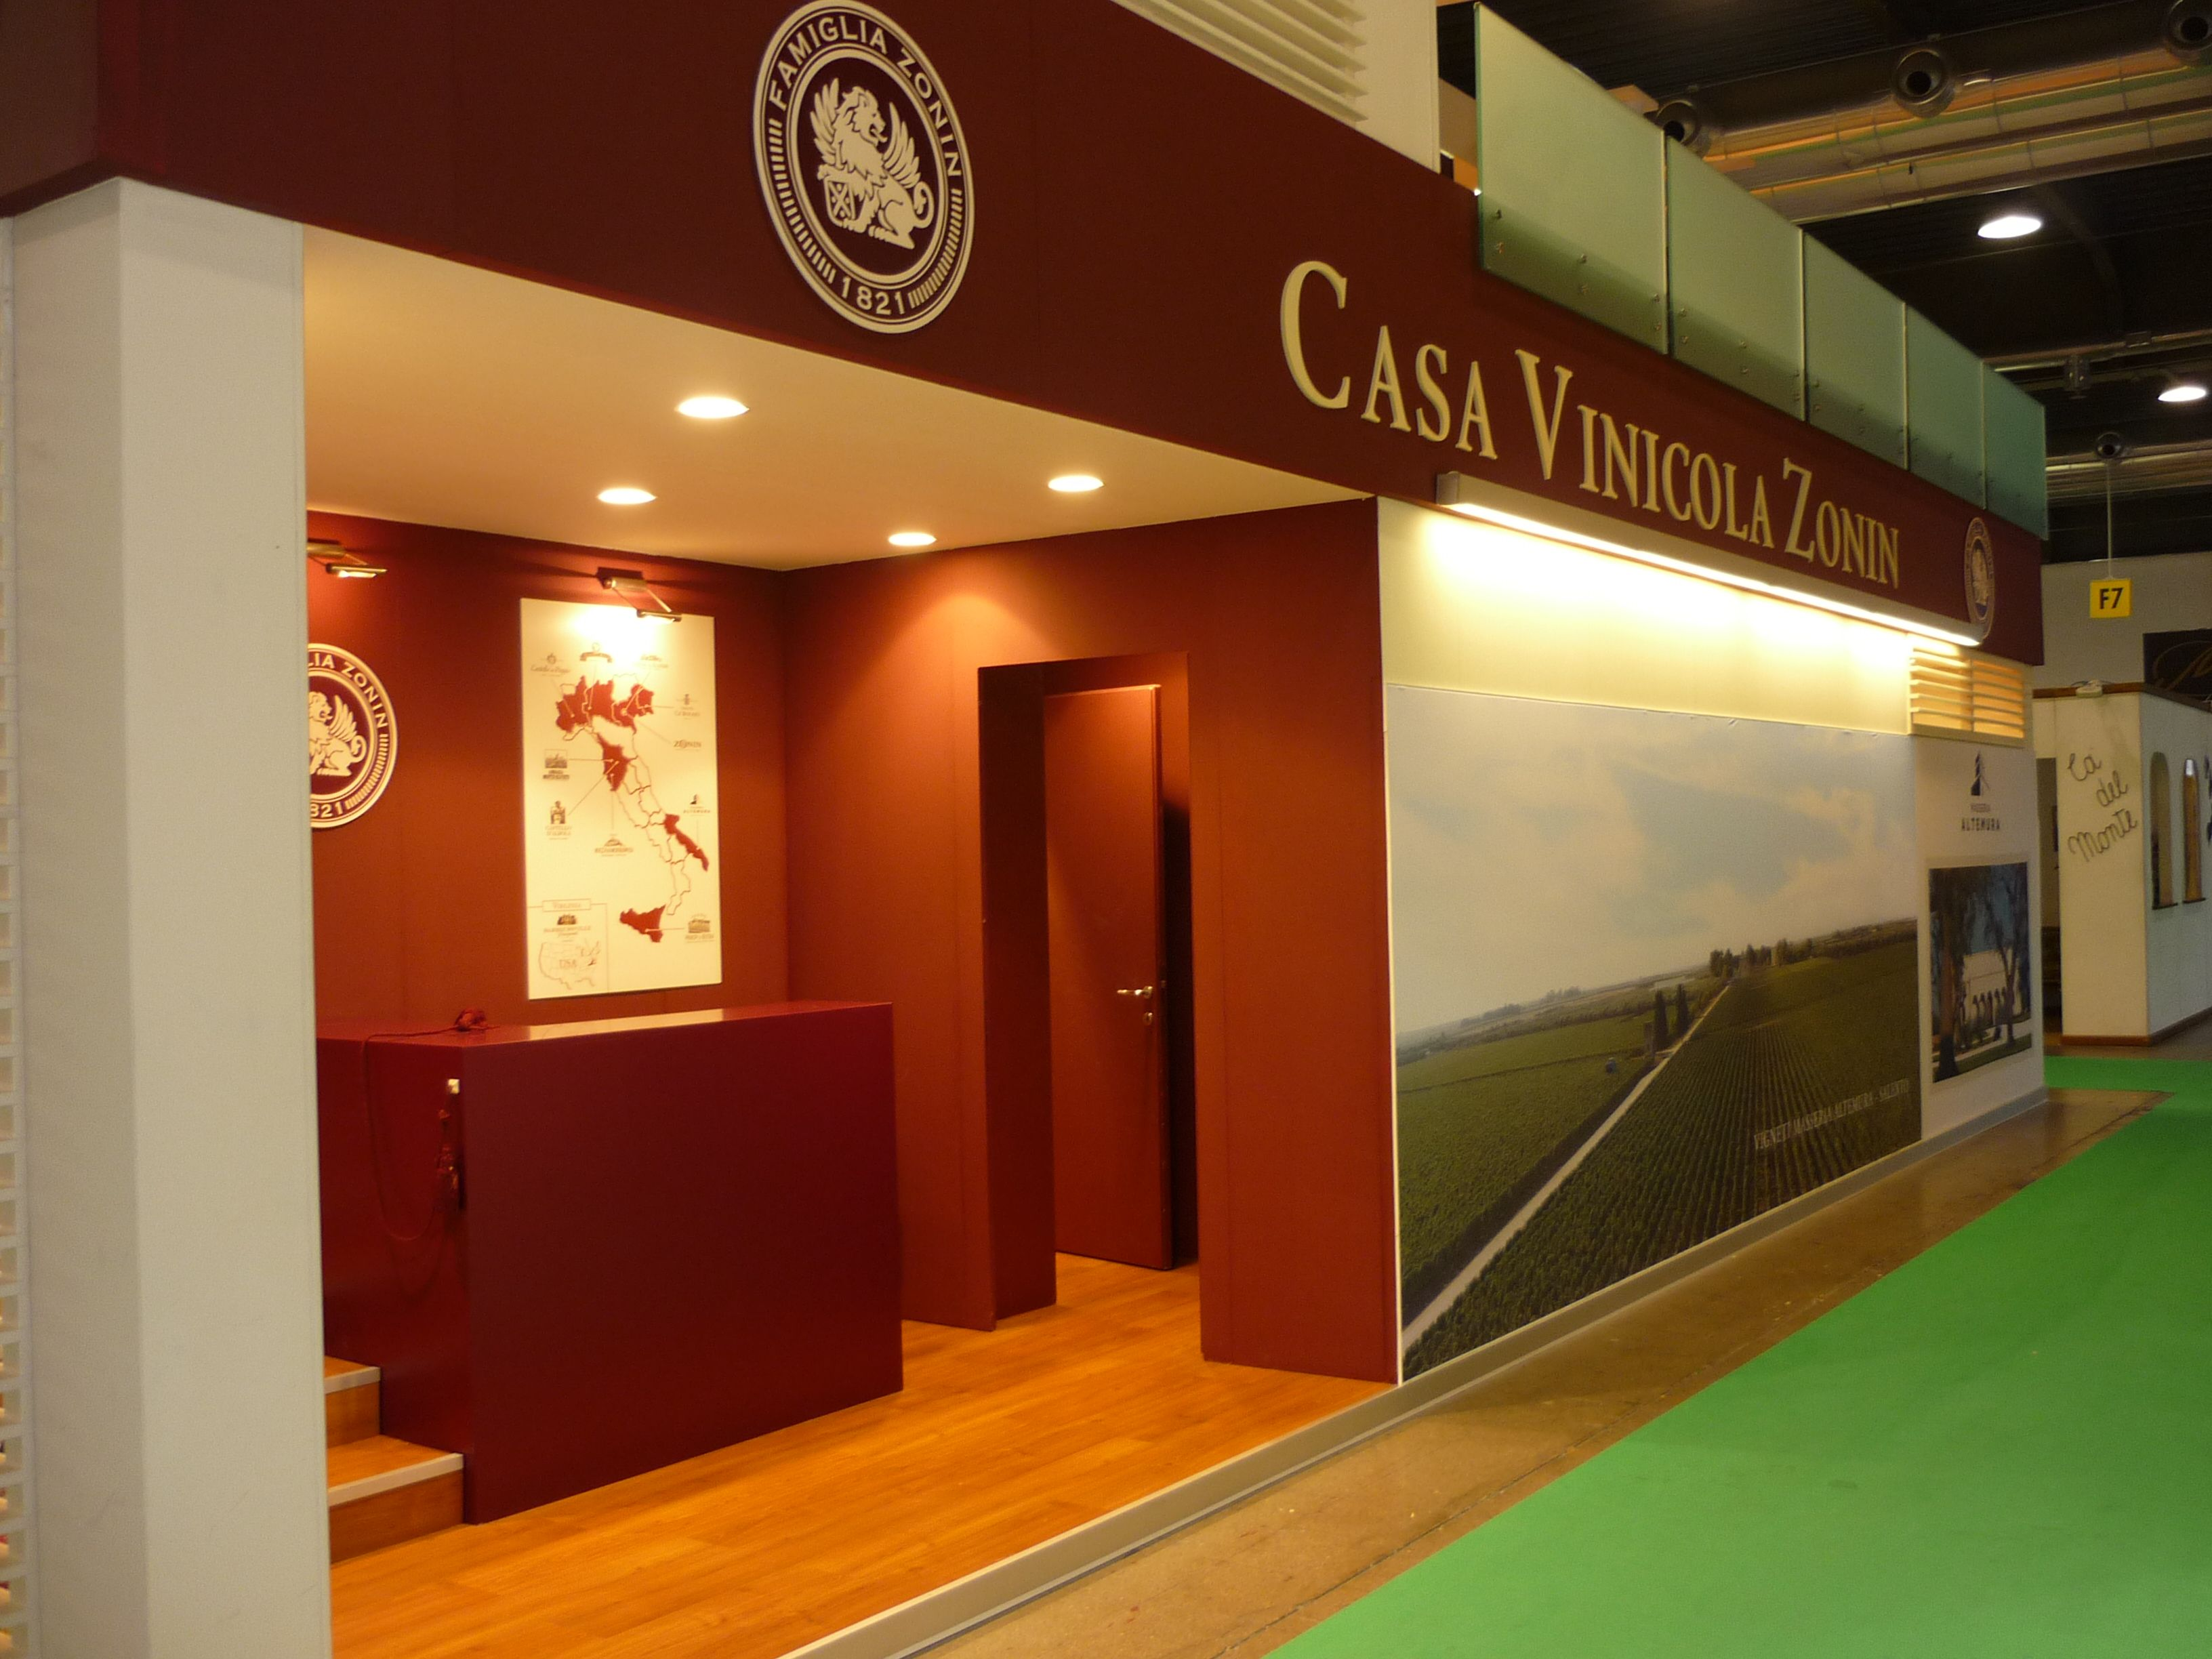 Exhibition Stand For Zara : Exhibition stand for casa vinicola zonin at vinitaly in verona